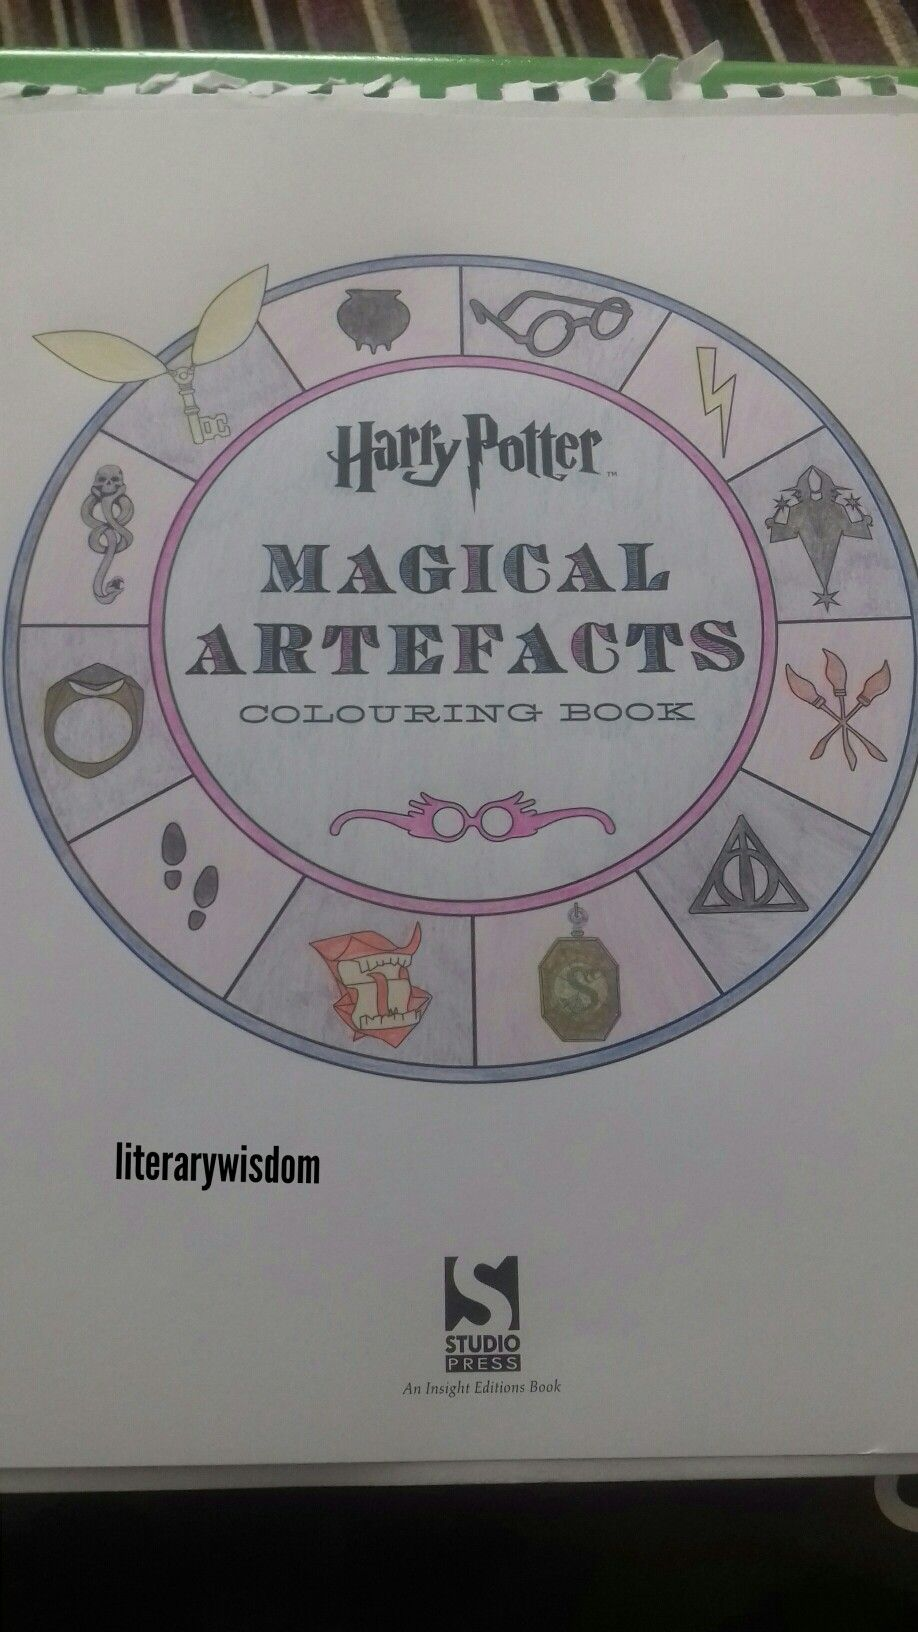 Completed 15 04 2017 Harry Potter Magical Artifacts Colouring Book